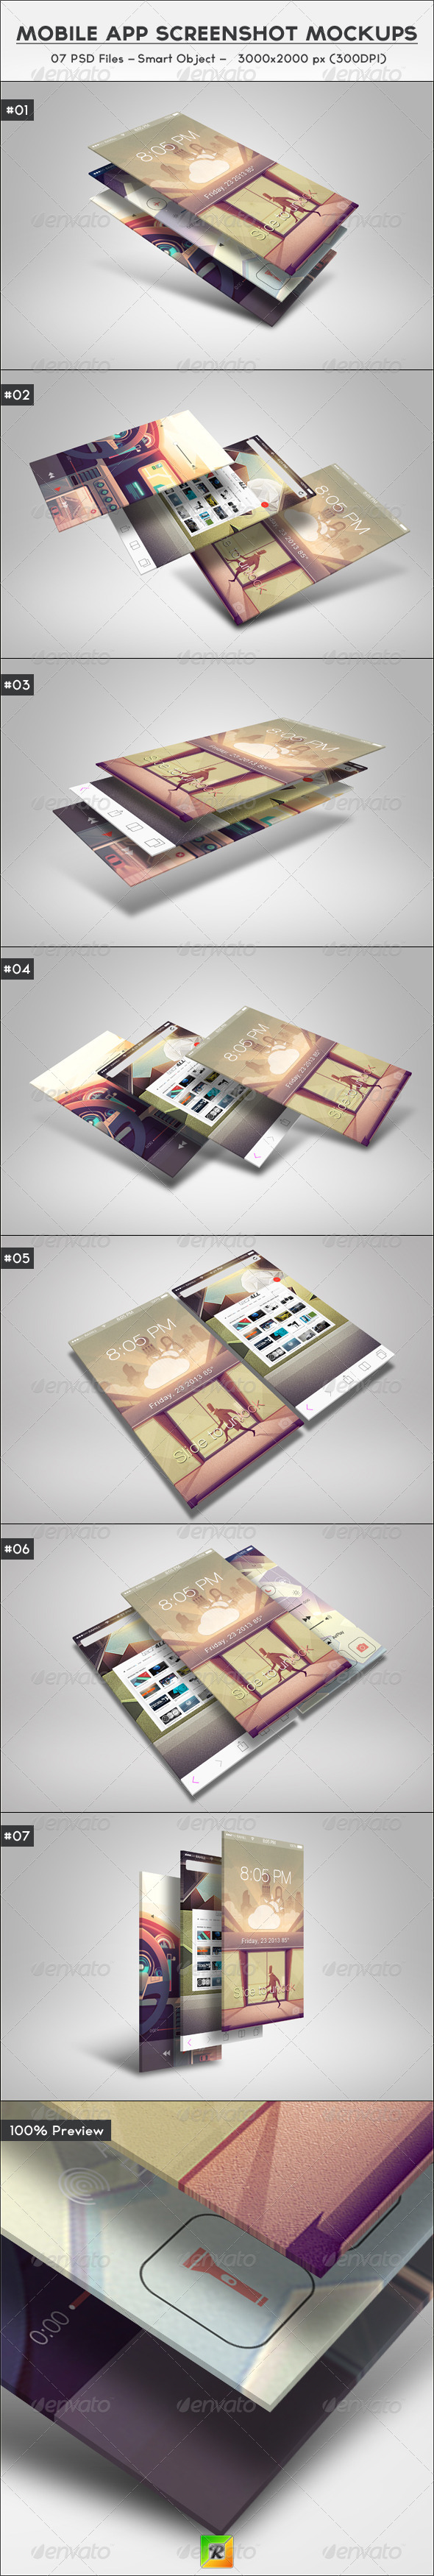 Mobile App Screenshot Mockups - Mobile Displays